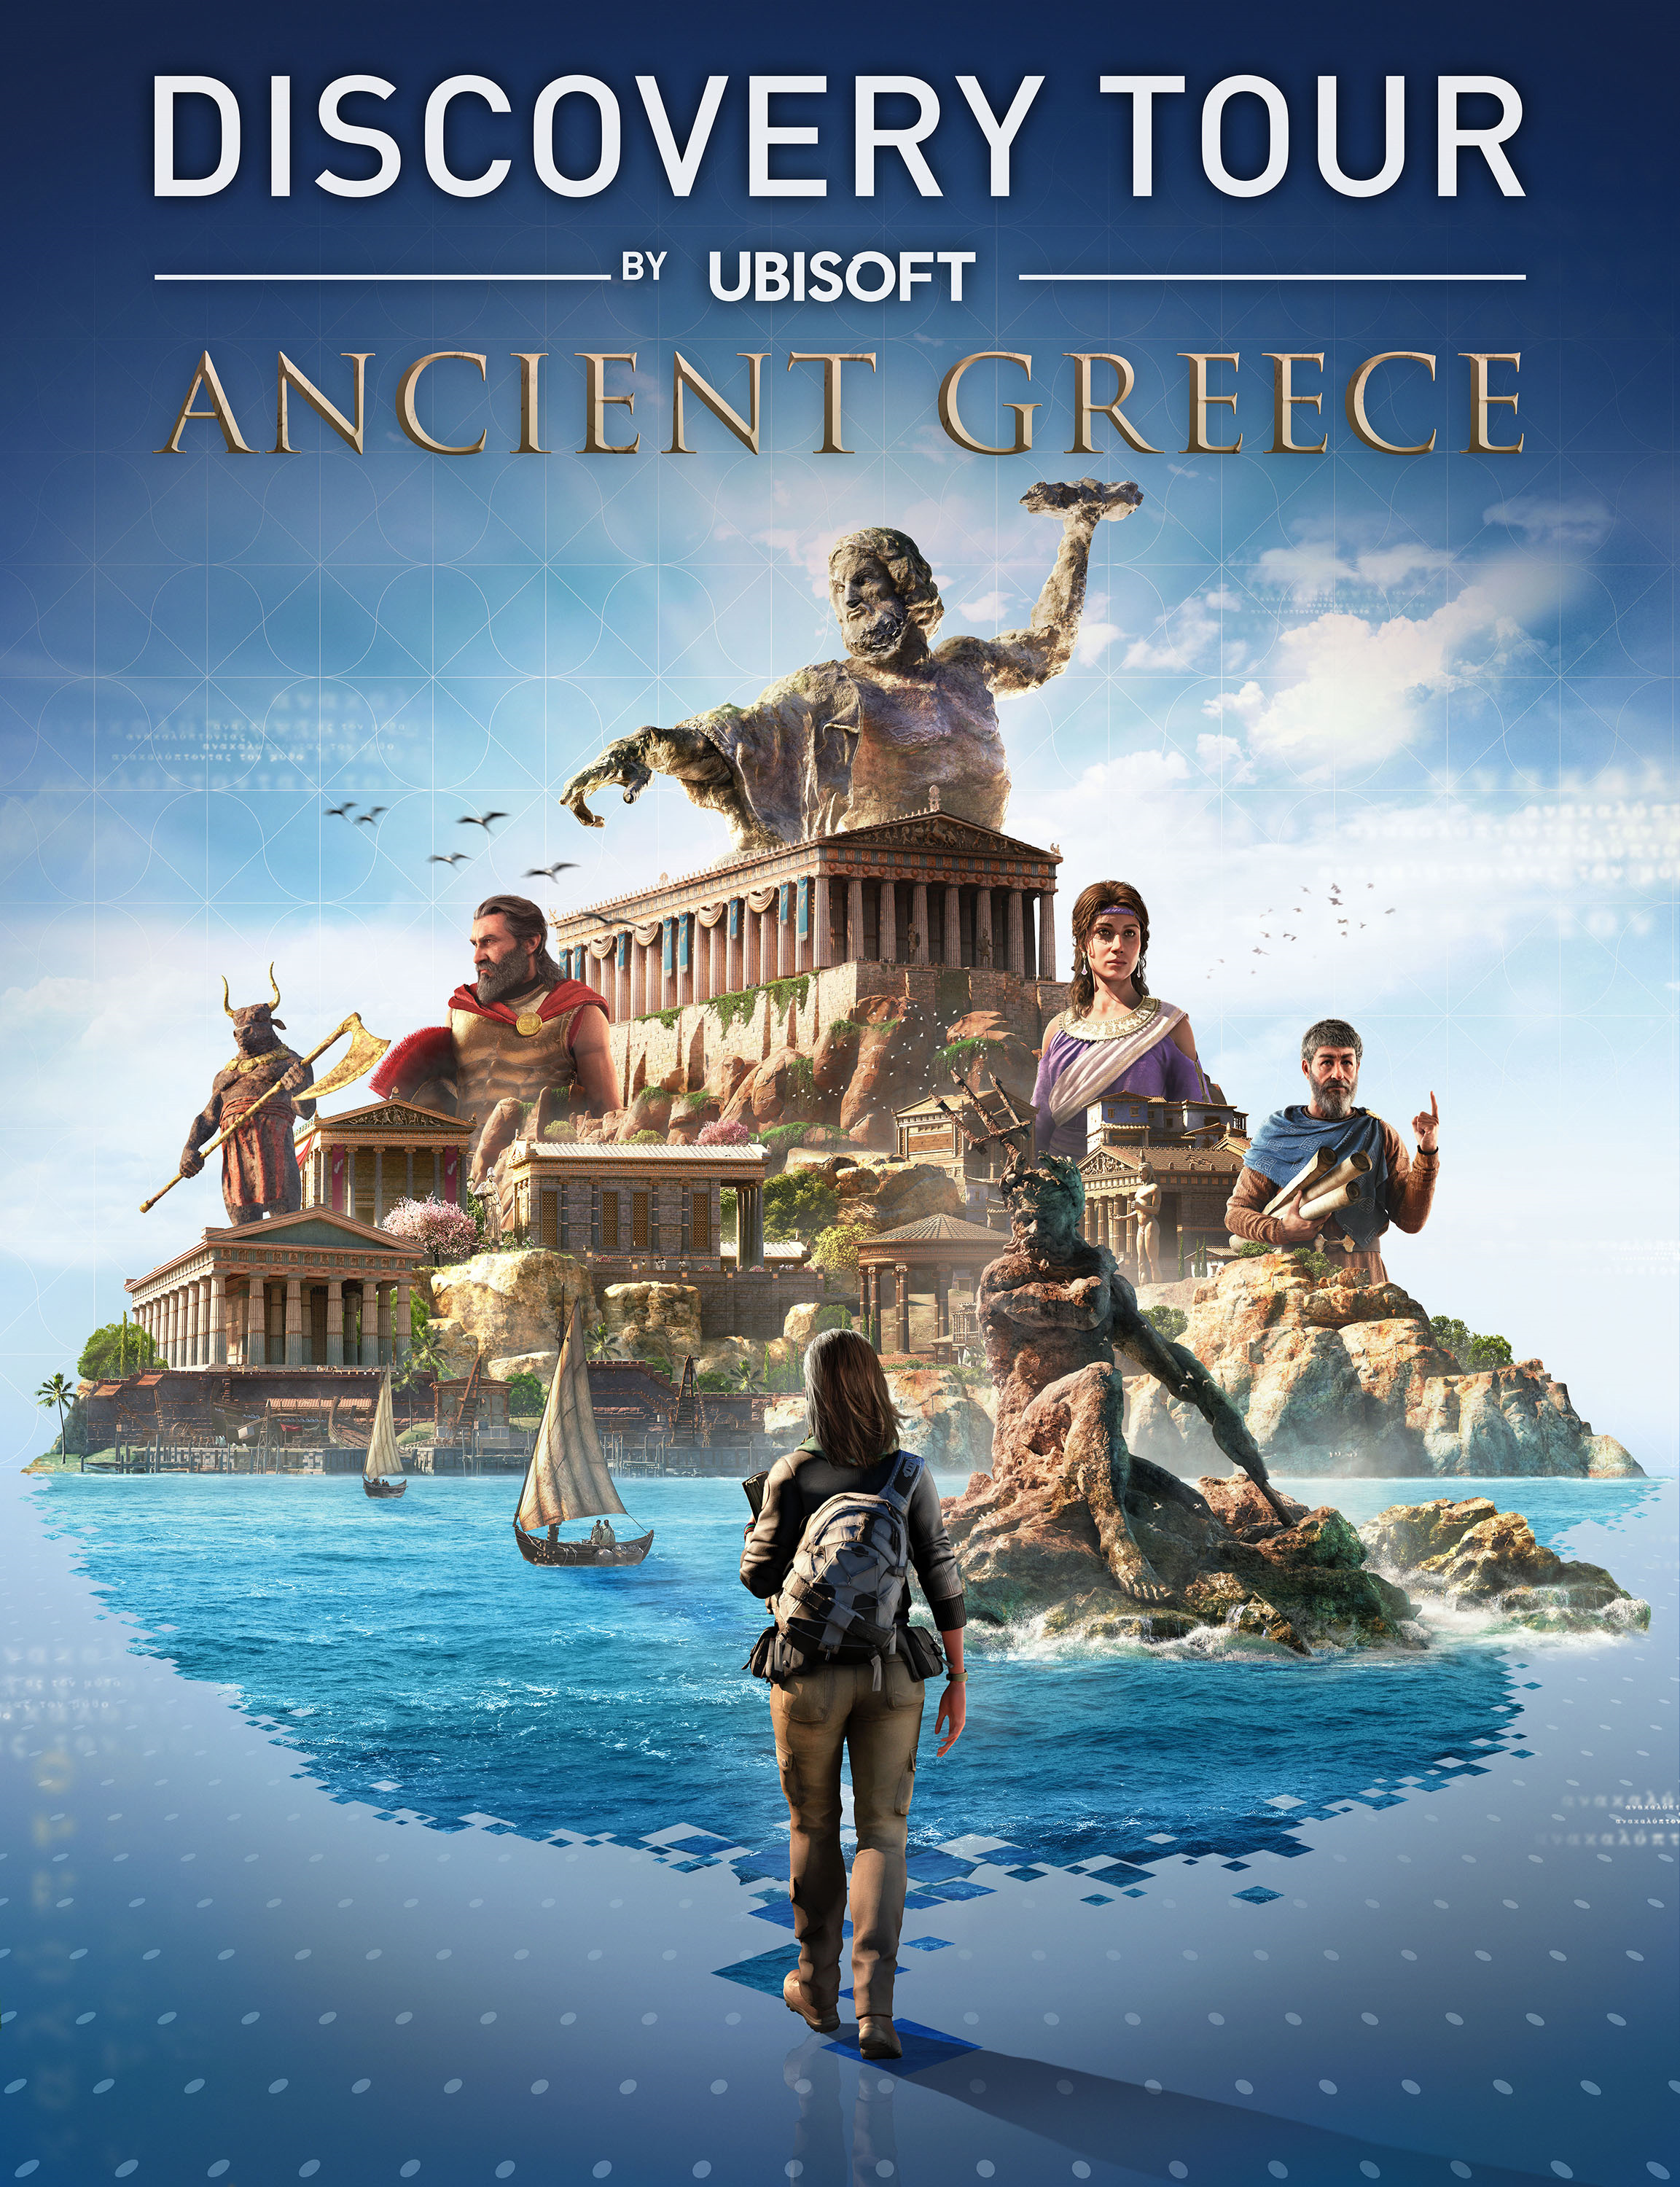 Discovery Tour by Assassin's Creed: Ancient Greece cover